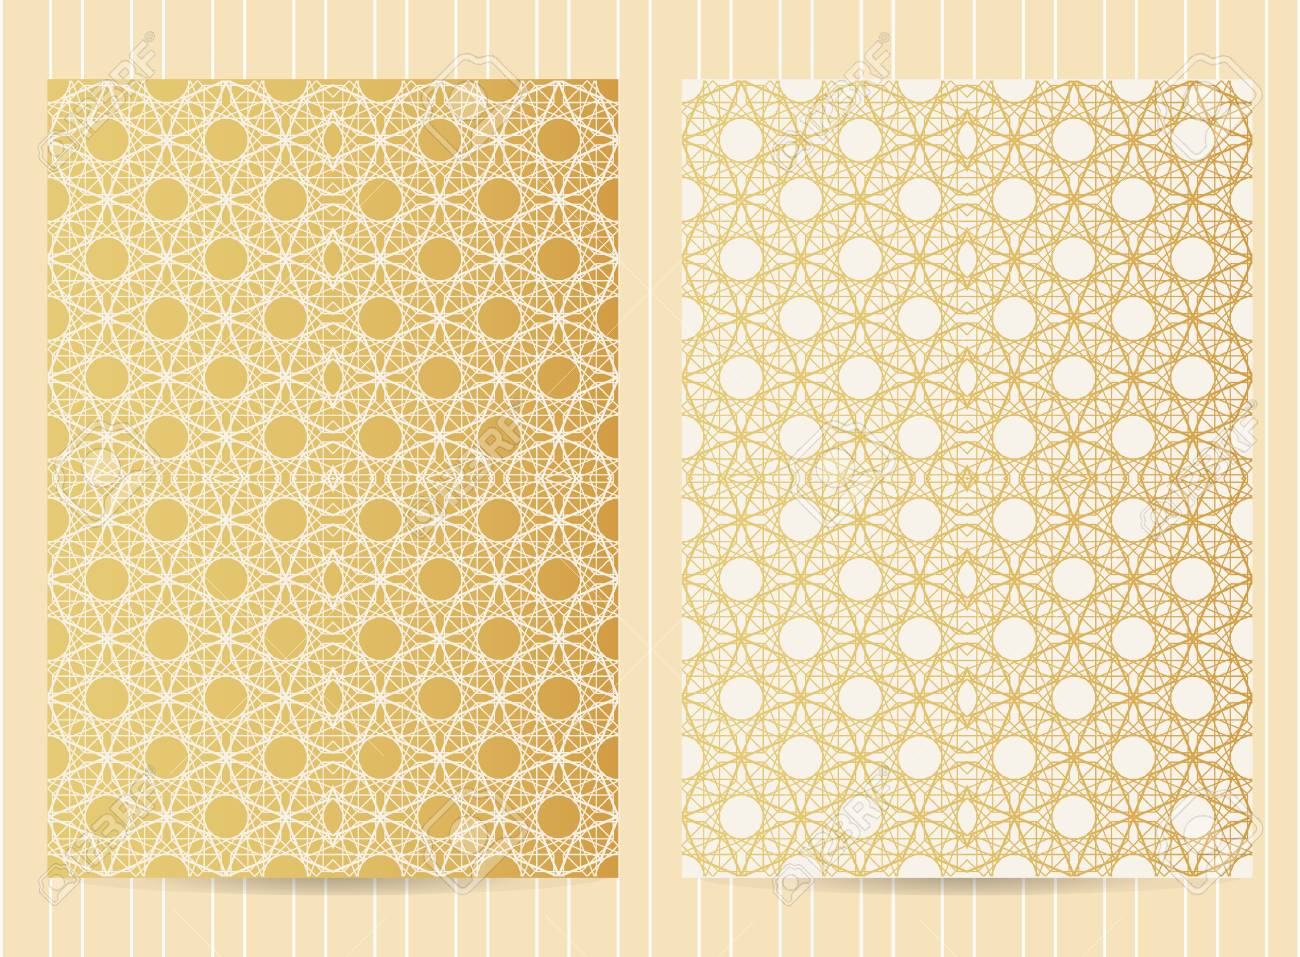 X Inch Size Cards In Golden Color Vector Luxury Templates - 5x7 greeting card template